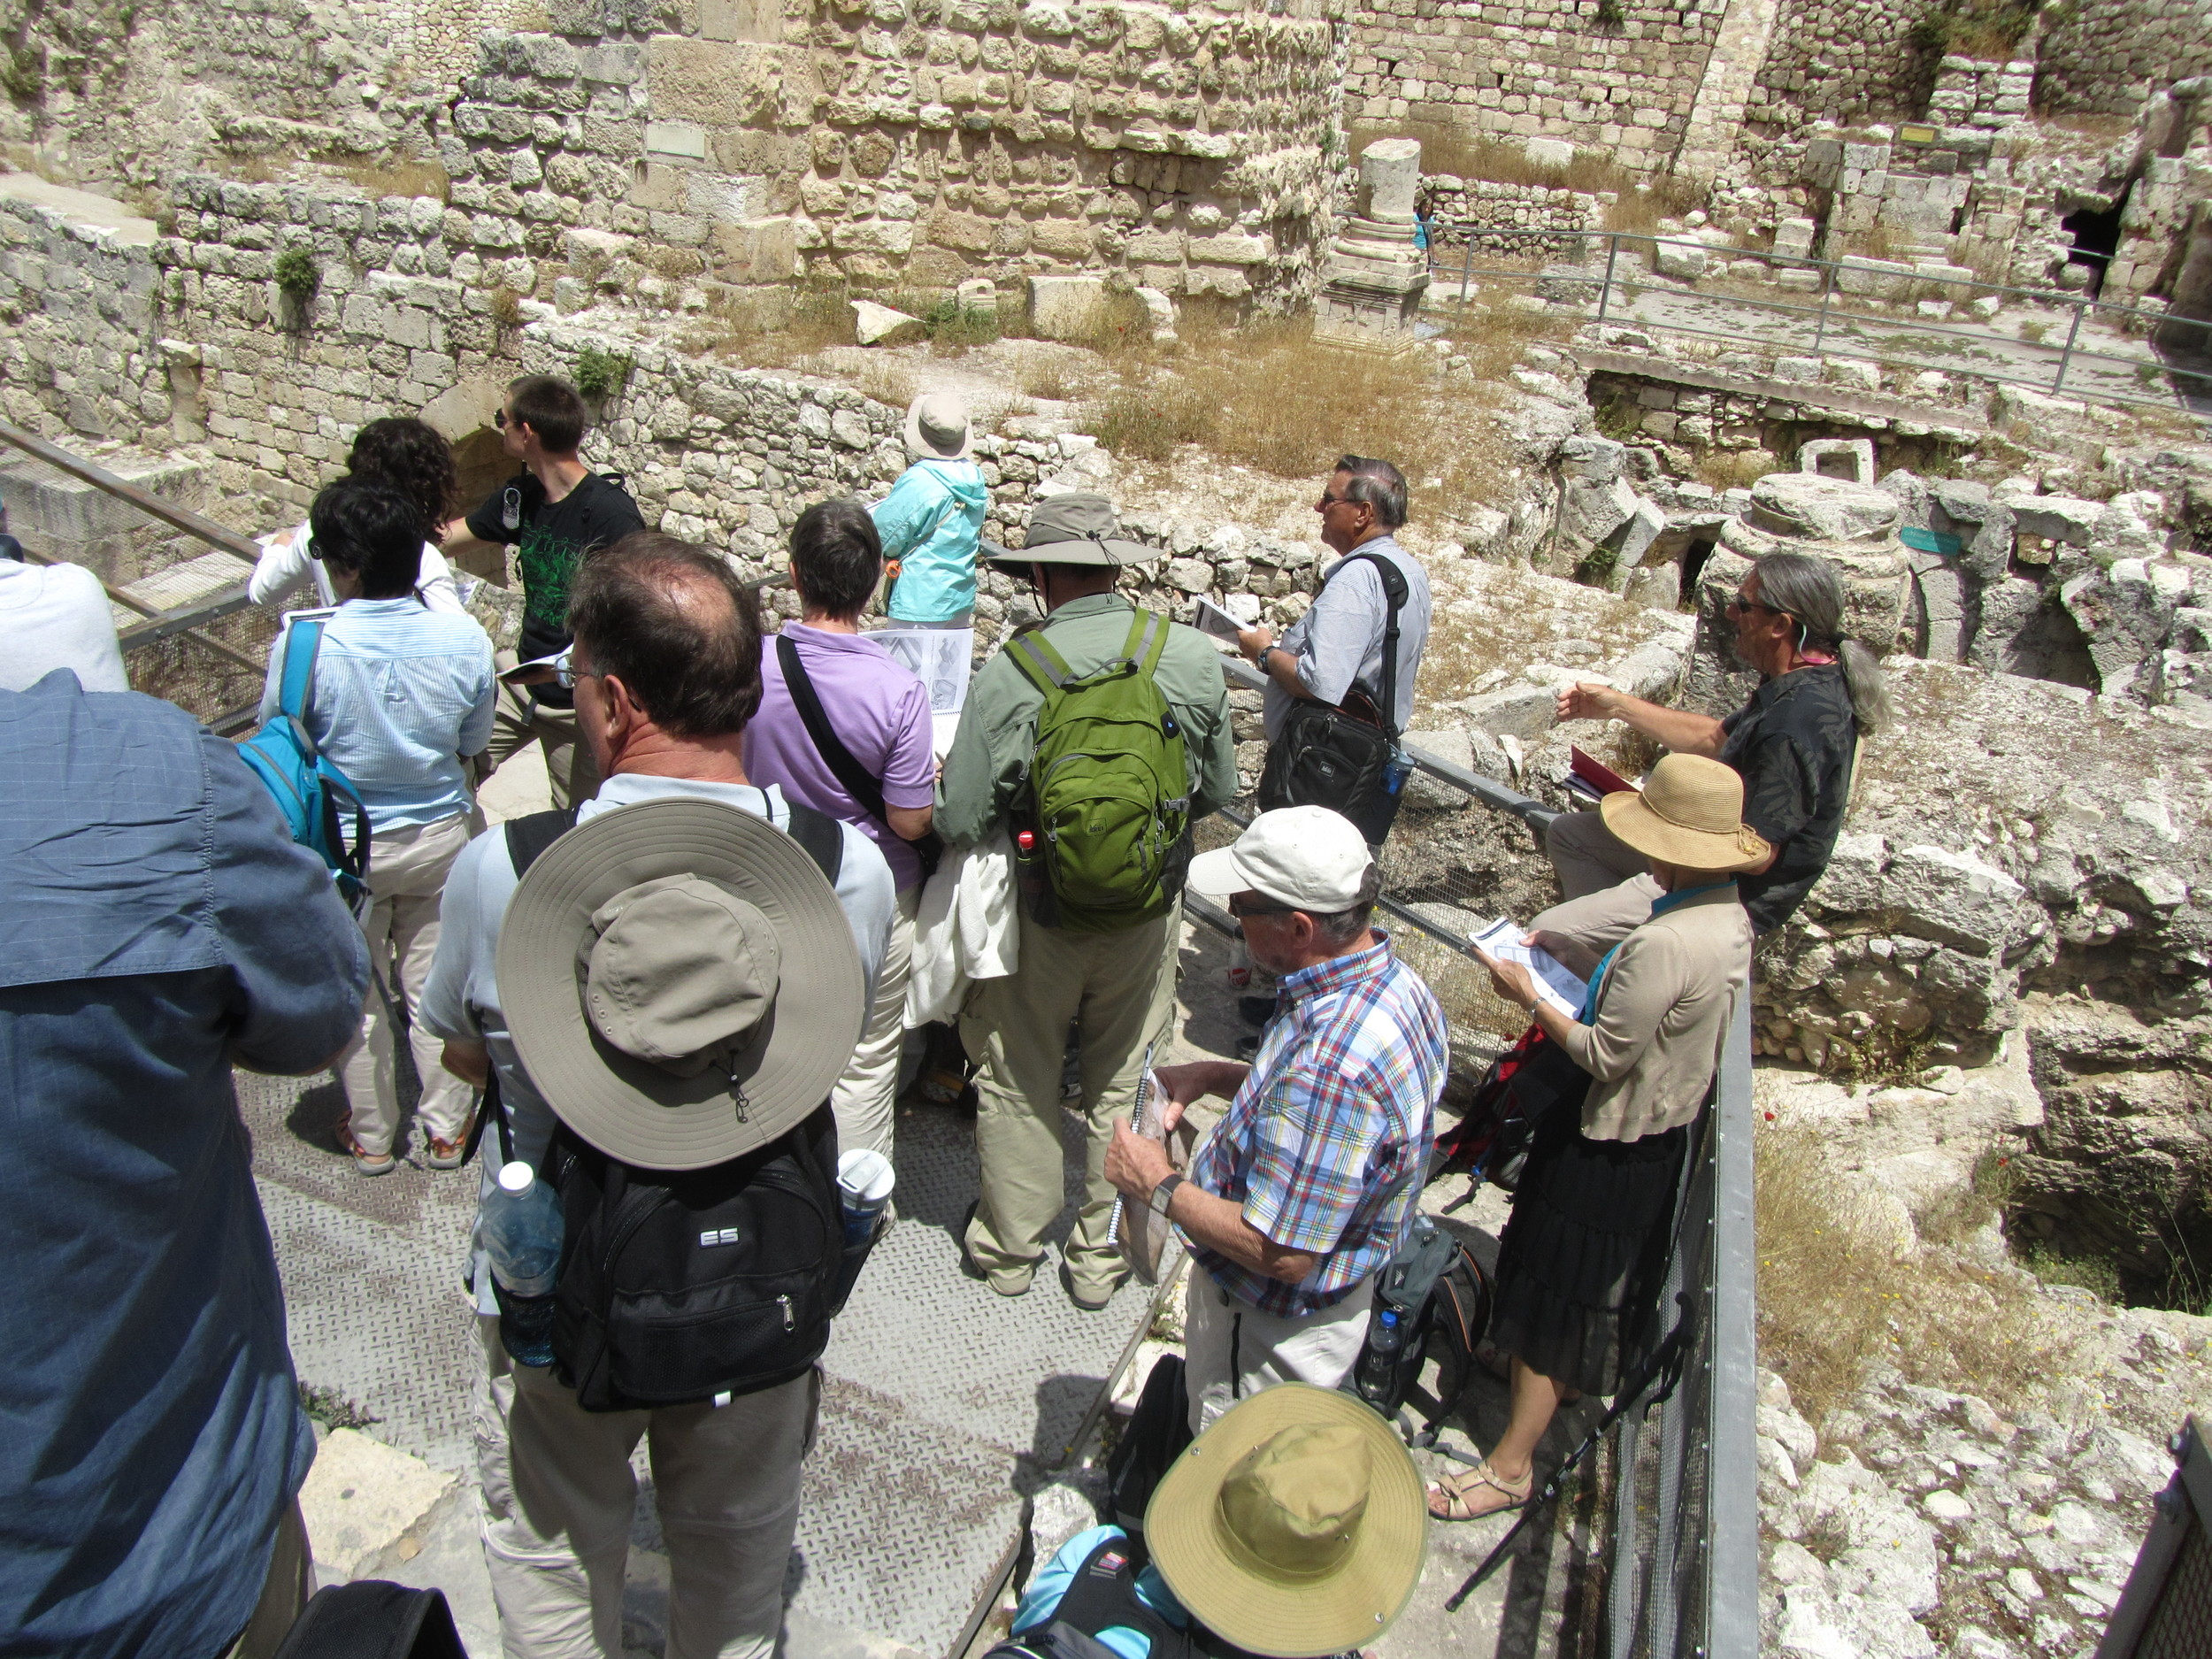 Art Barrett explains the ruins of Bethesda to our group